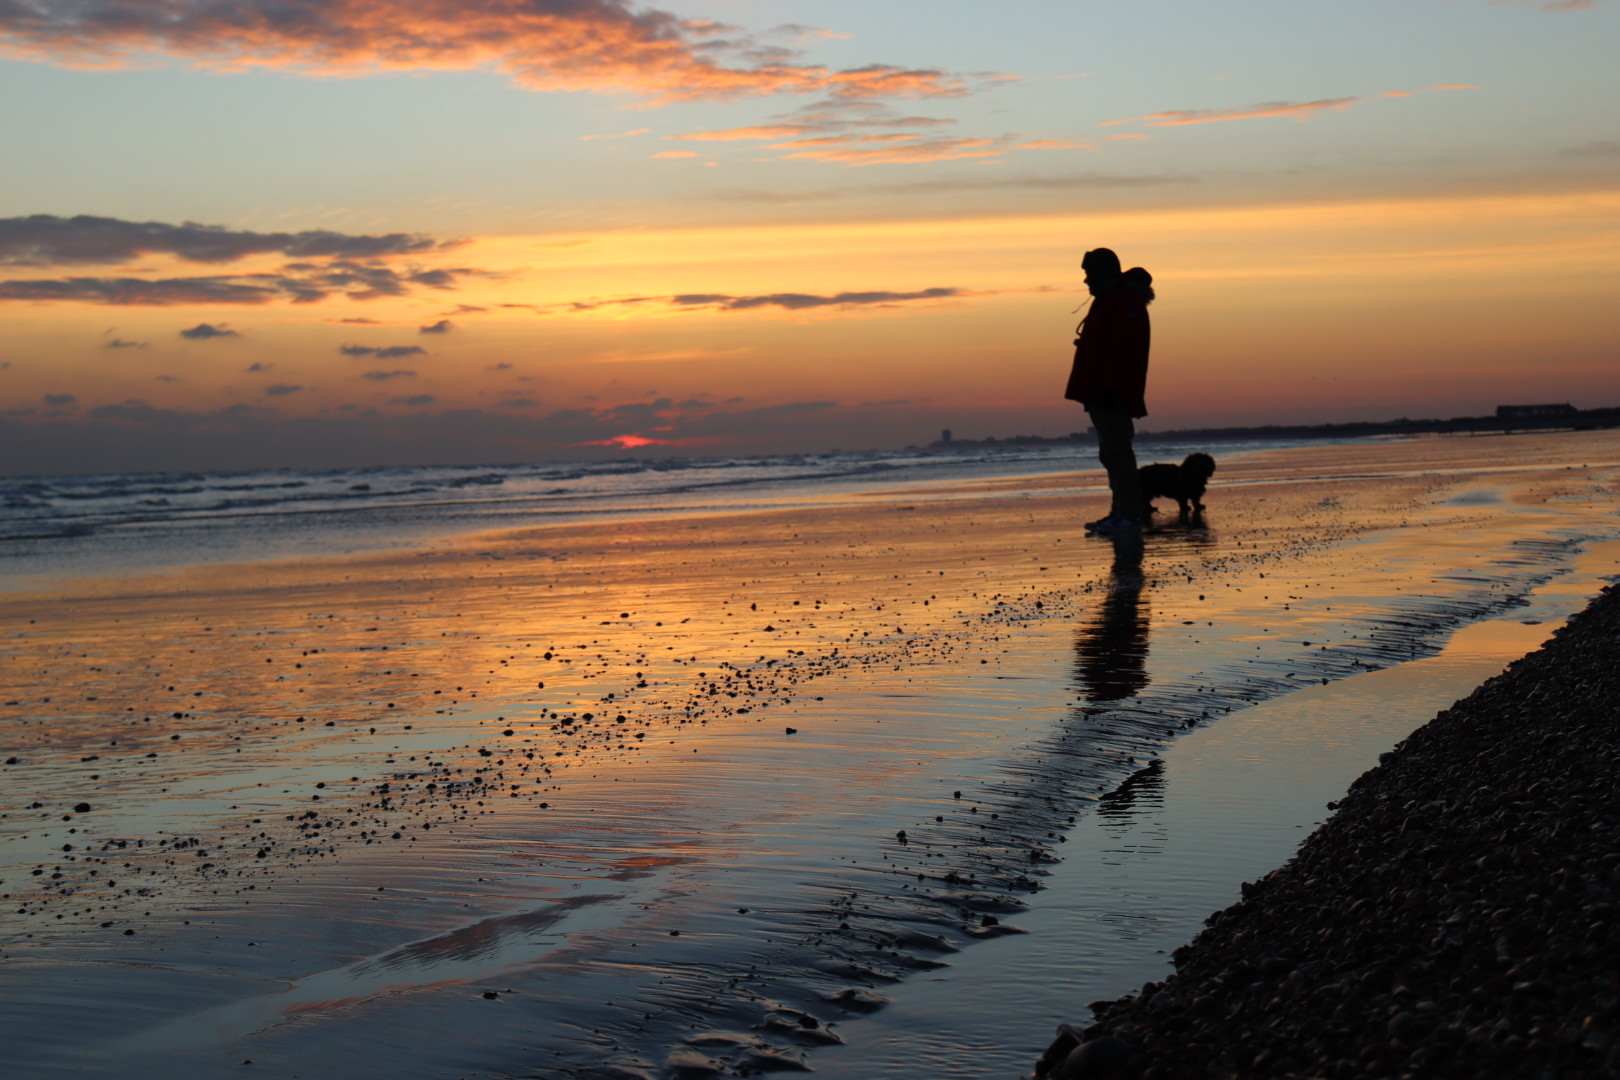 Silhouette of a man and dog. Stood on sand as the tide rolls out into the horizon. Sunset behind them obsucred by clouds.